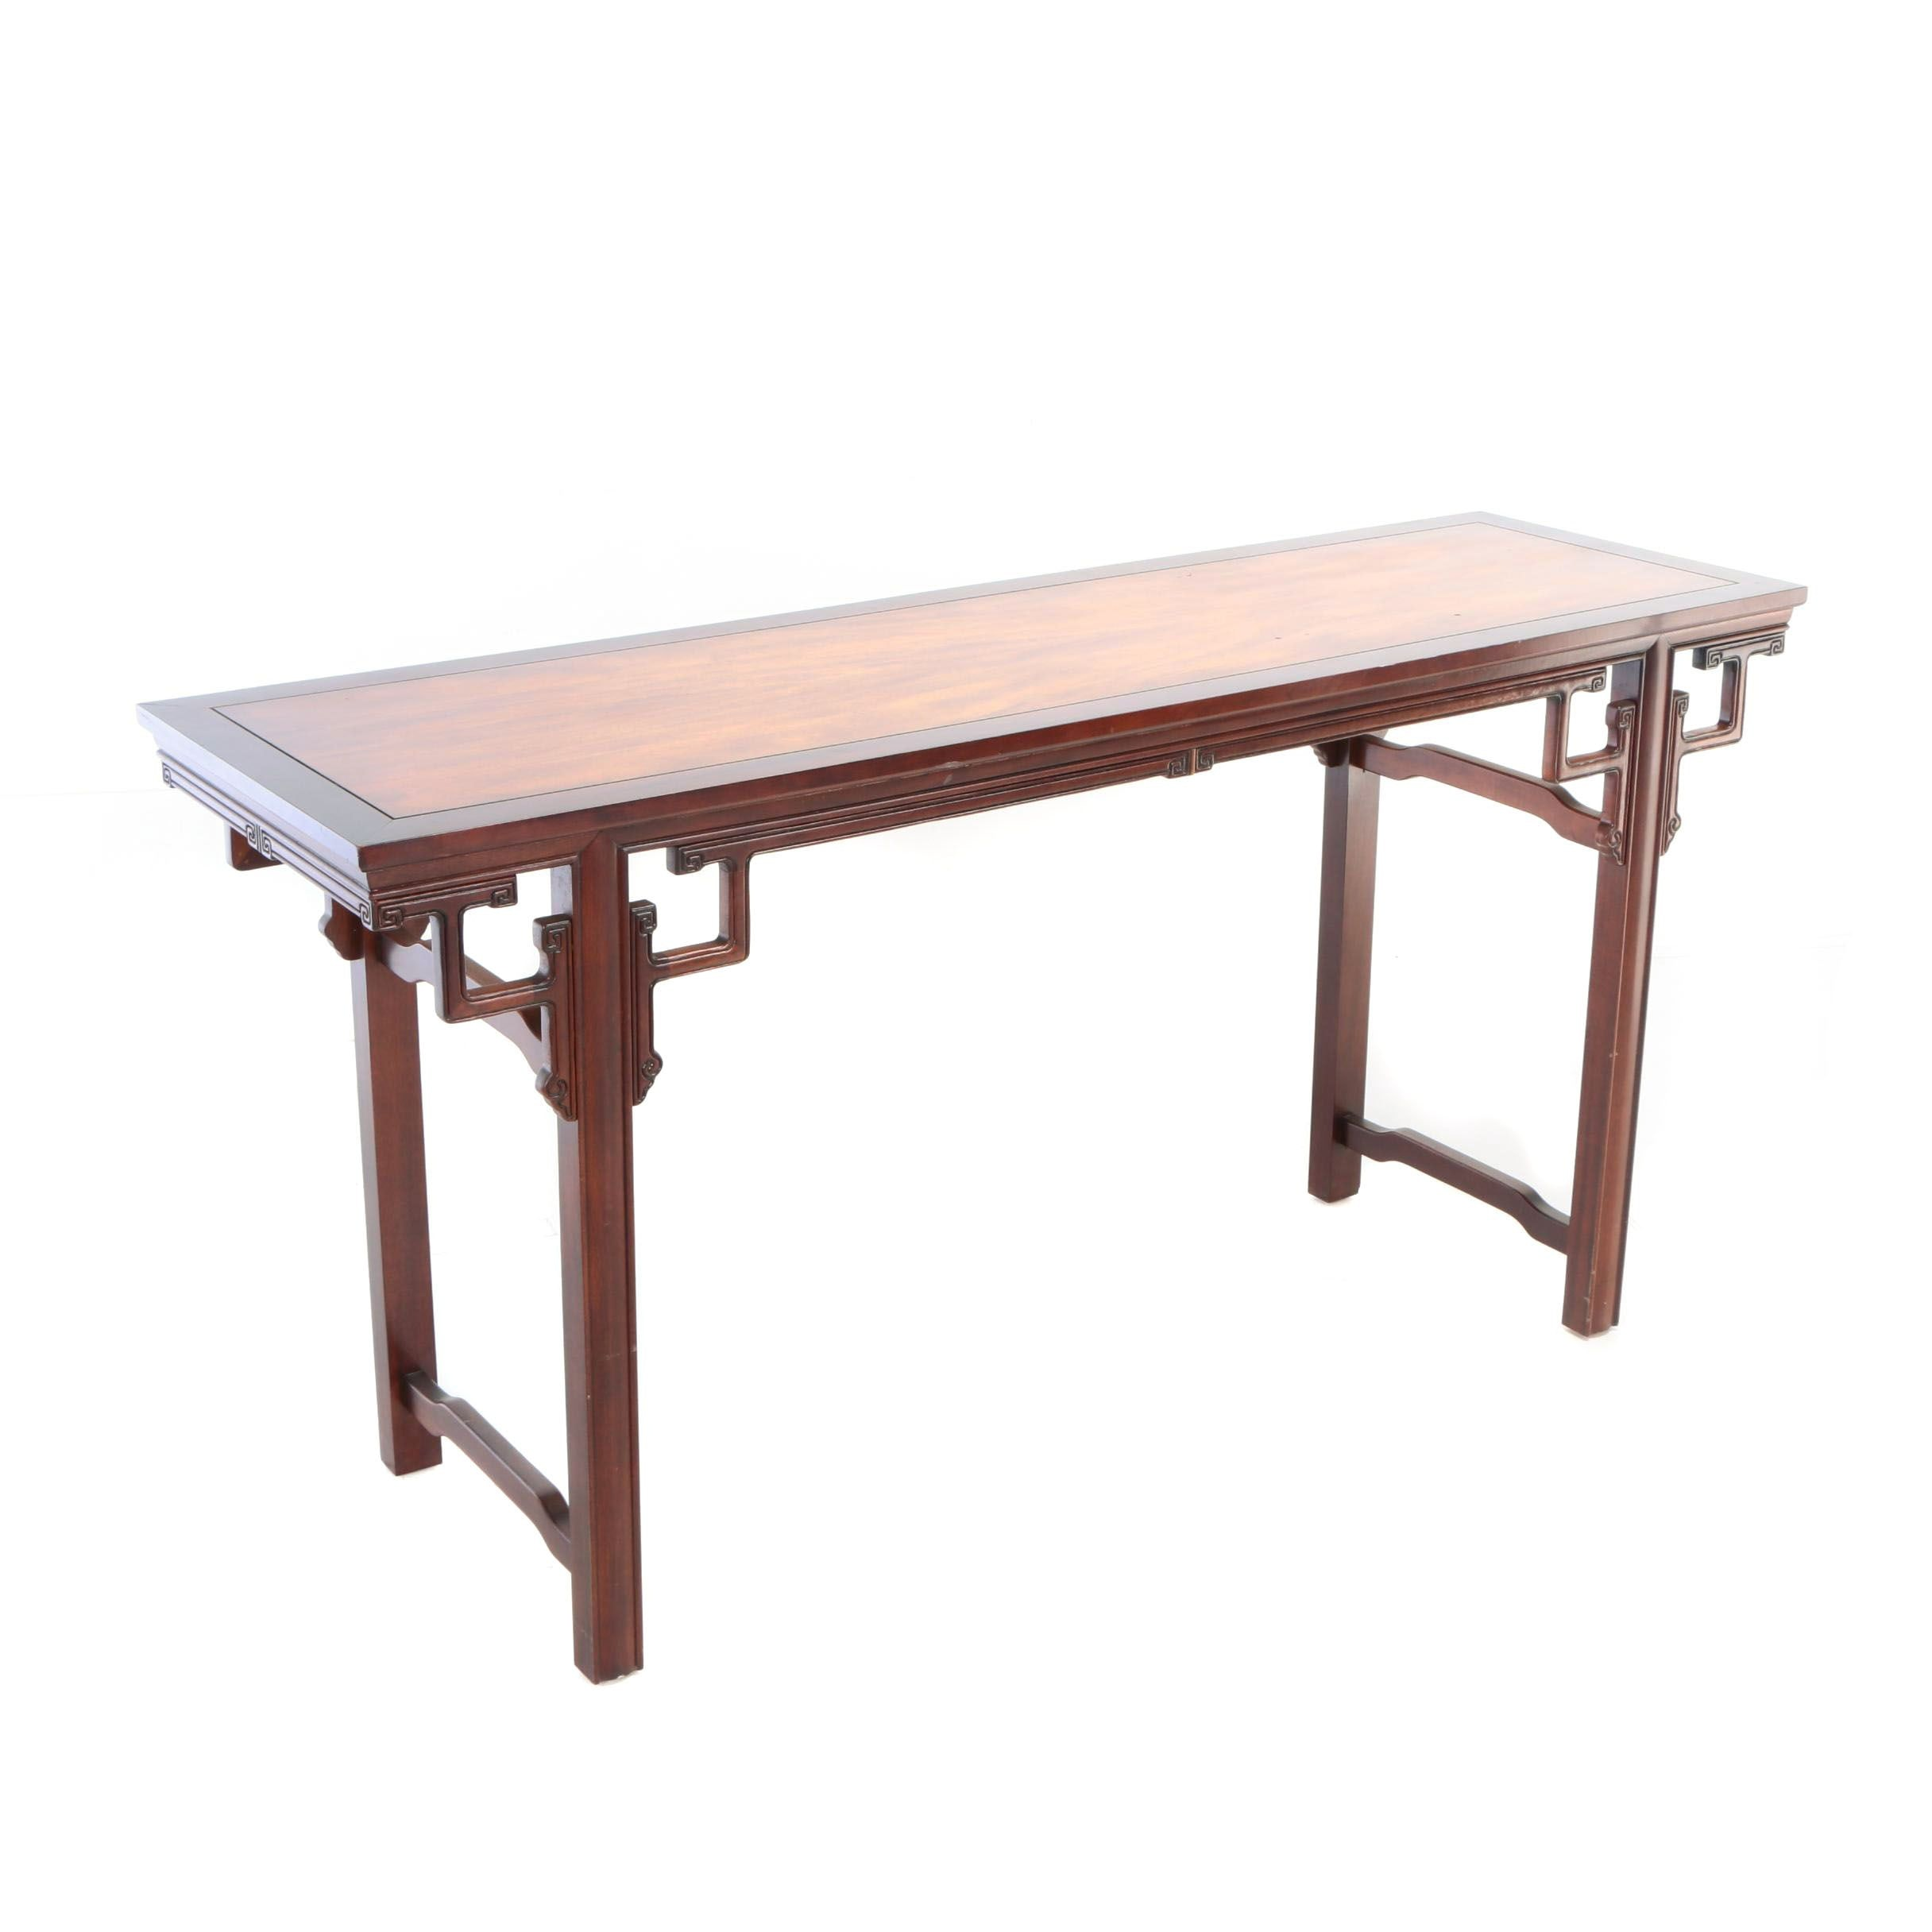 Chinese Carved Hardwood Console Table, Late 20th Century